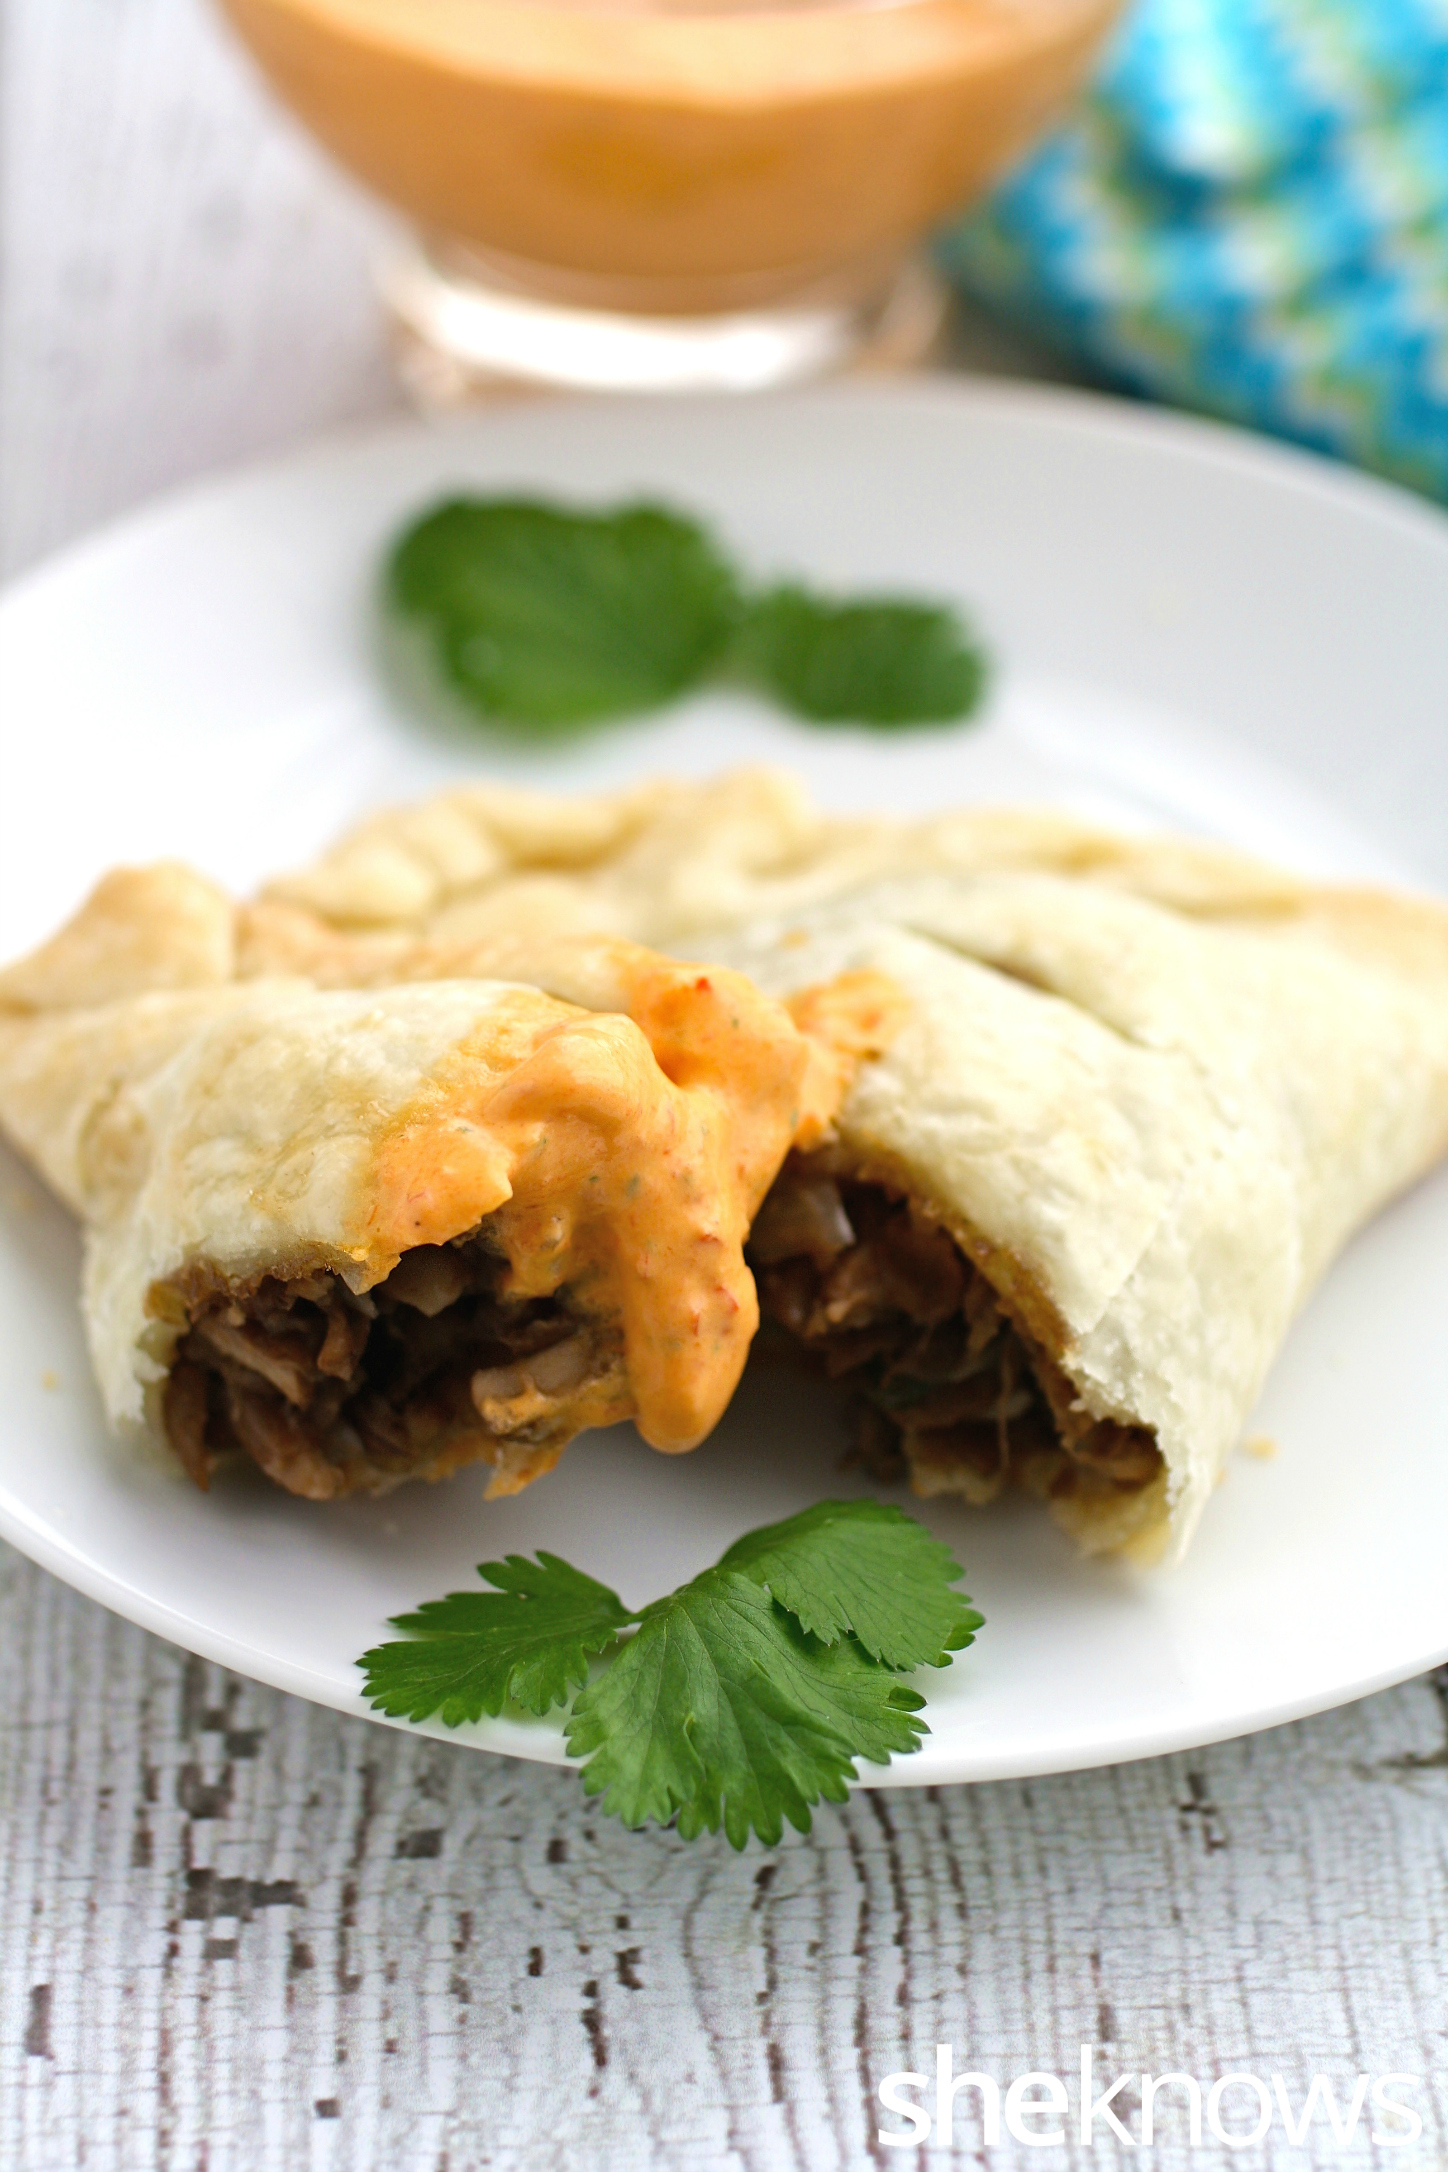 Kids and adults will certainly enjoy these lentil and mushroom empanadas with creamy roasted red peppers sauce